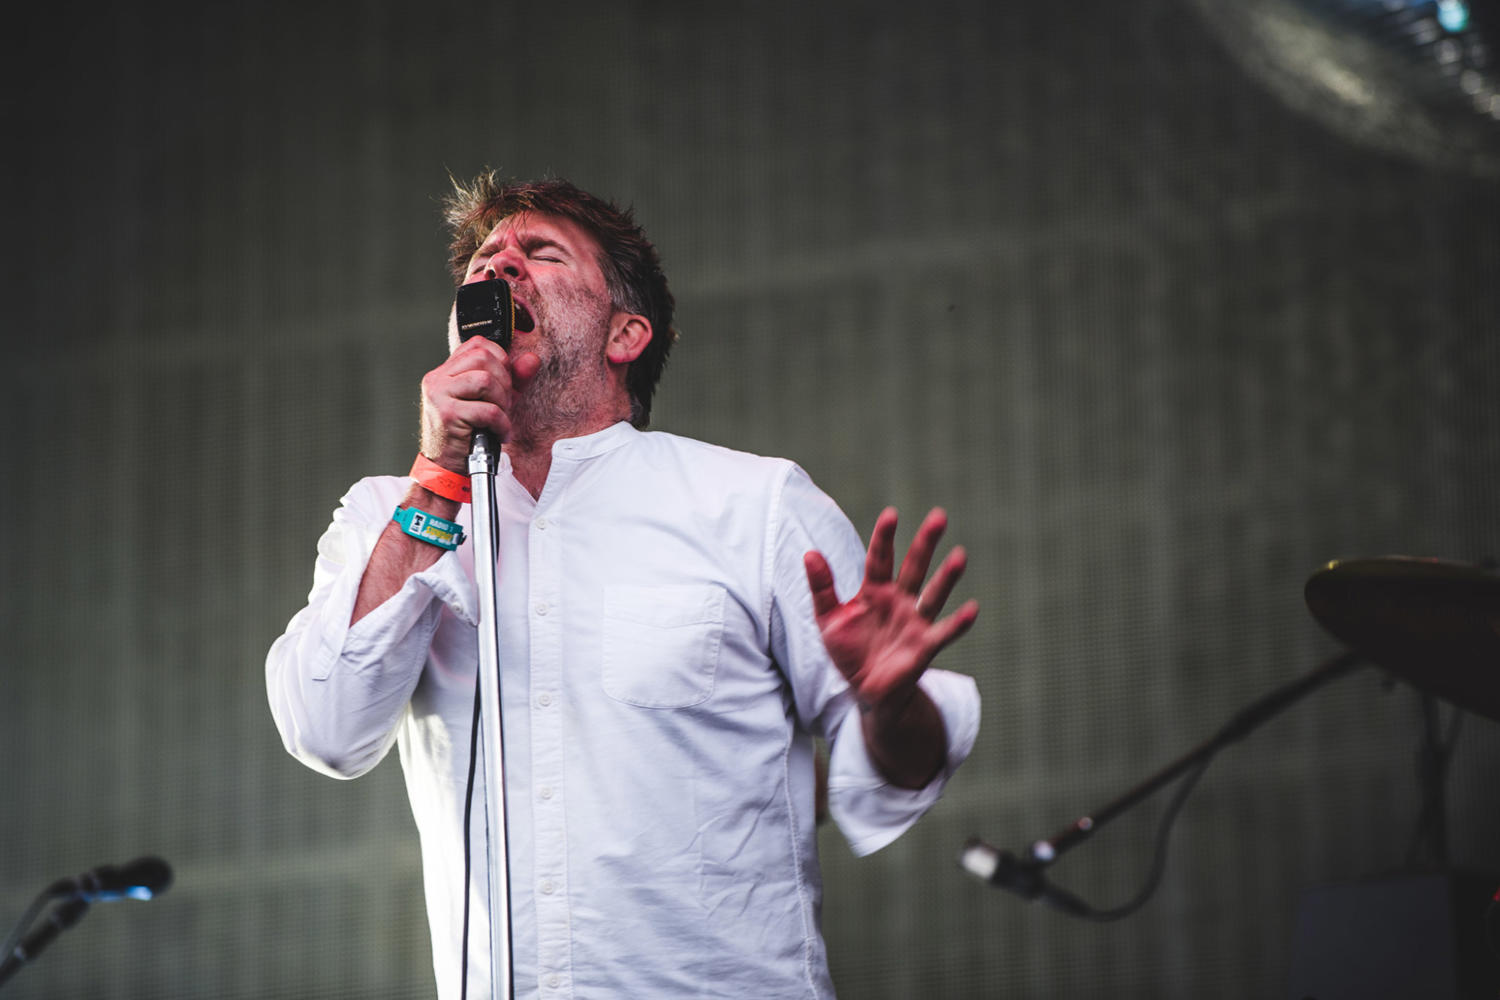 LCD Soundsystem cover Chic's 'I Want Your Love' for Spotify Singles session